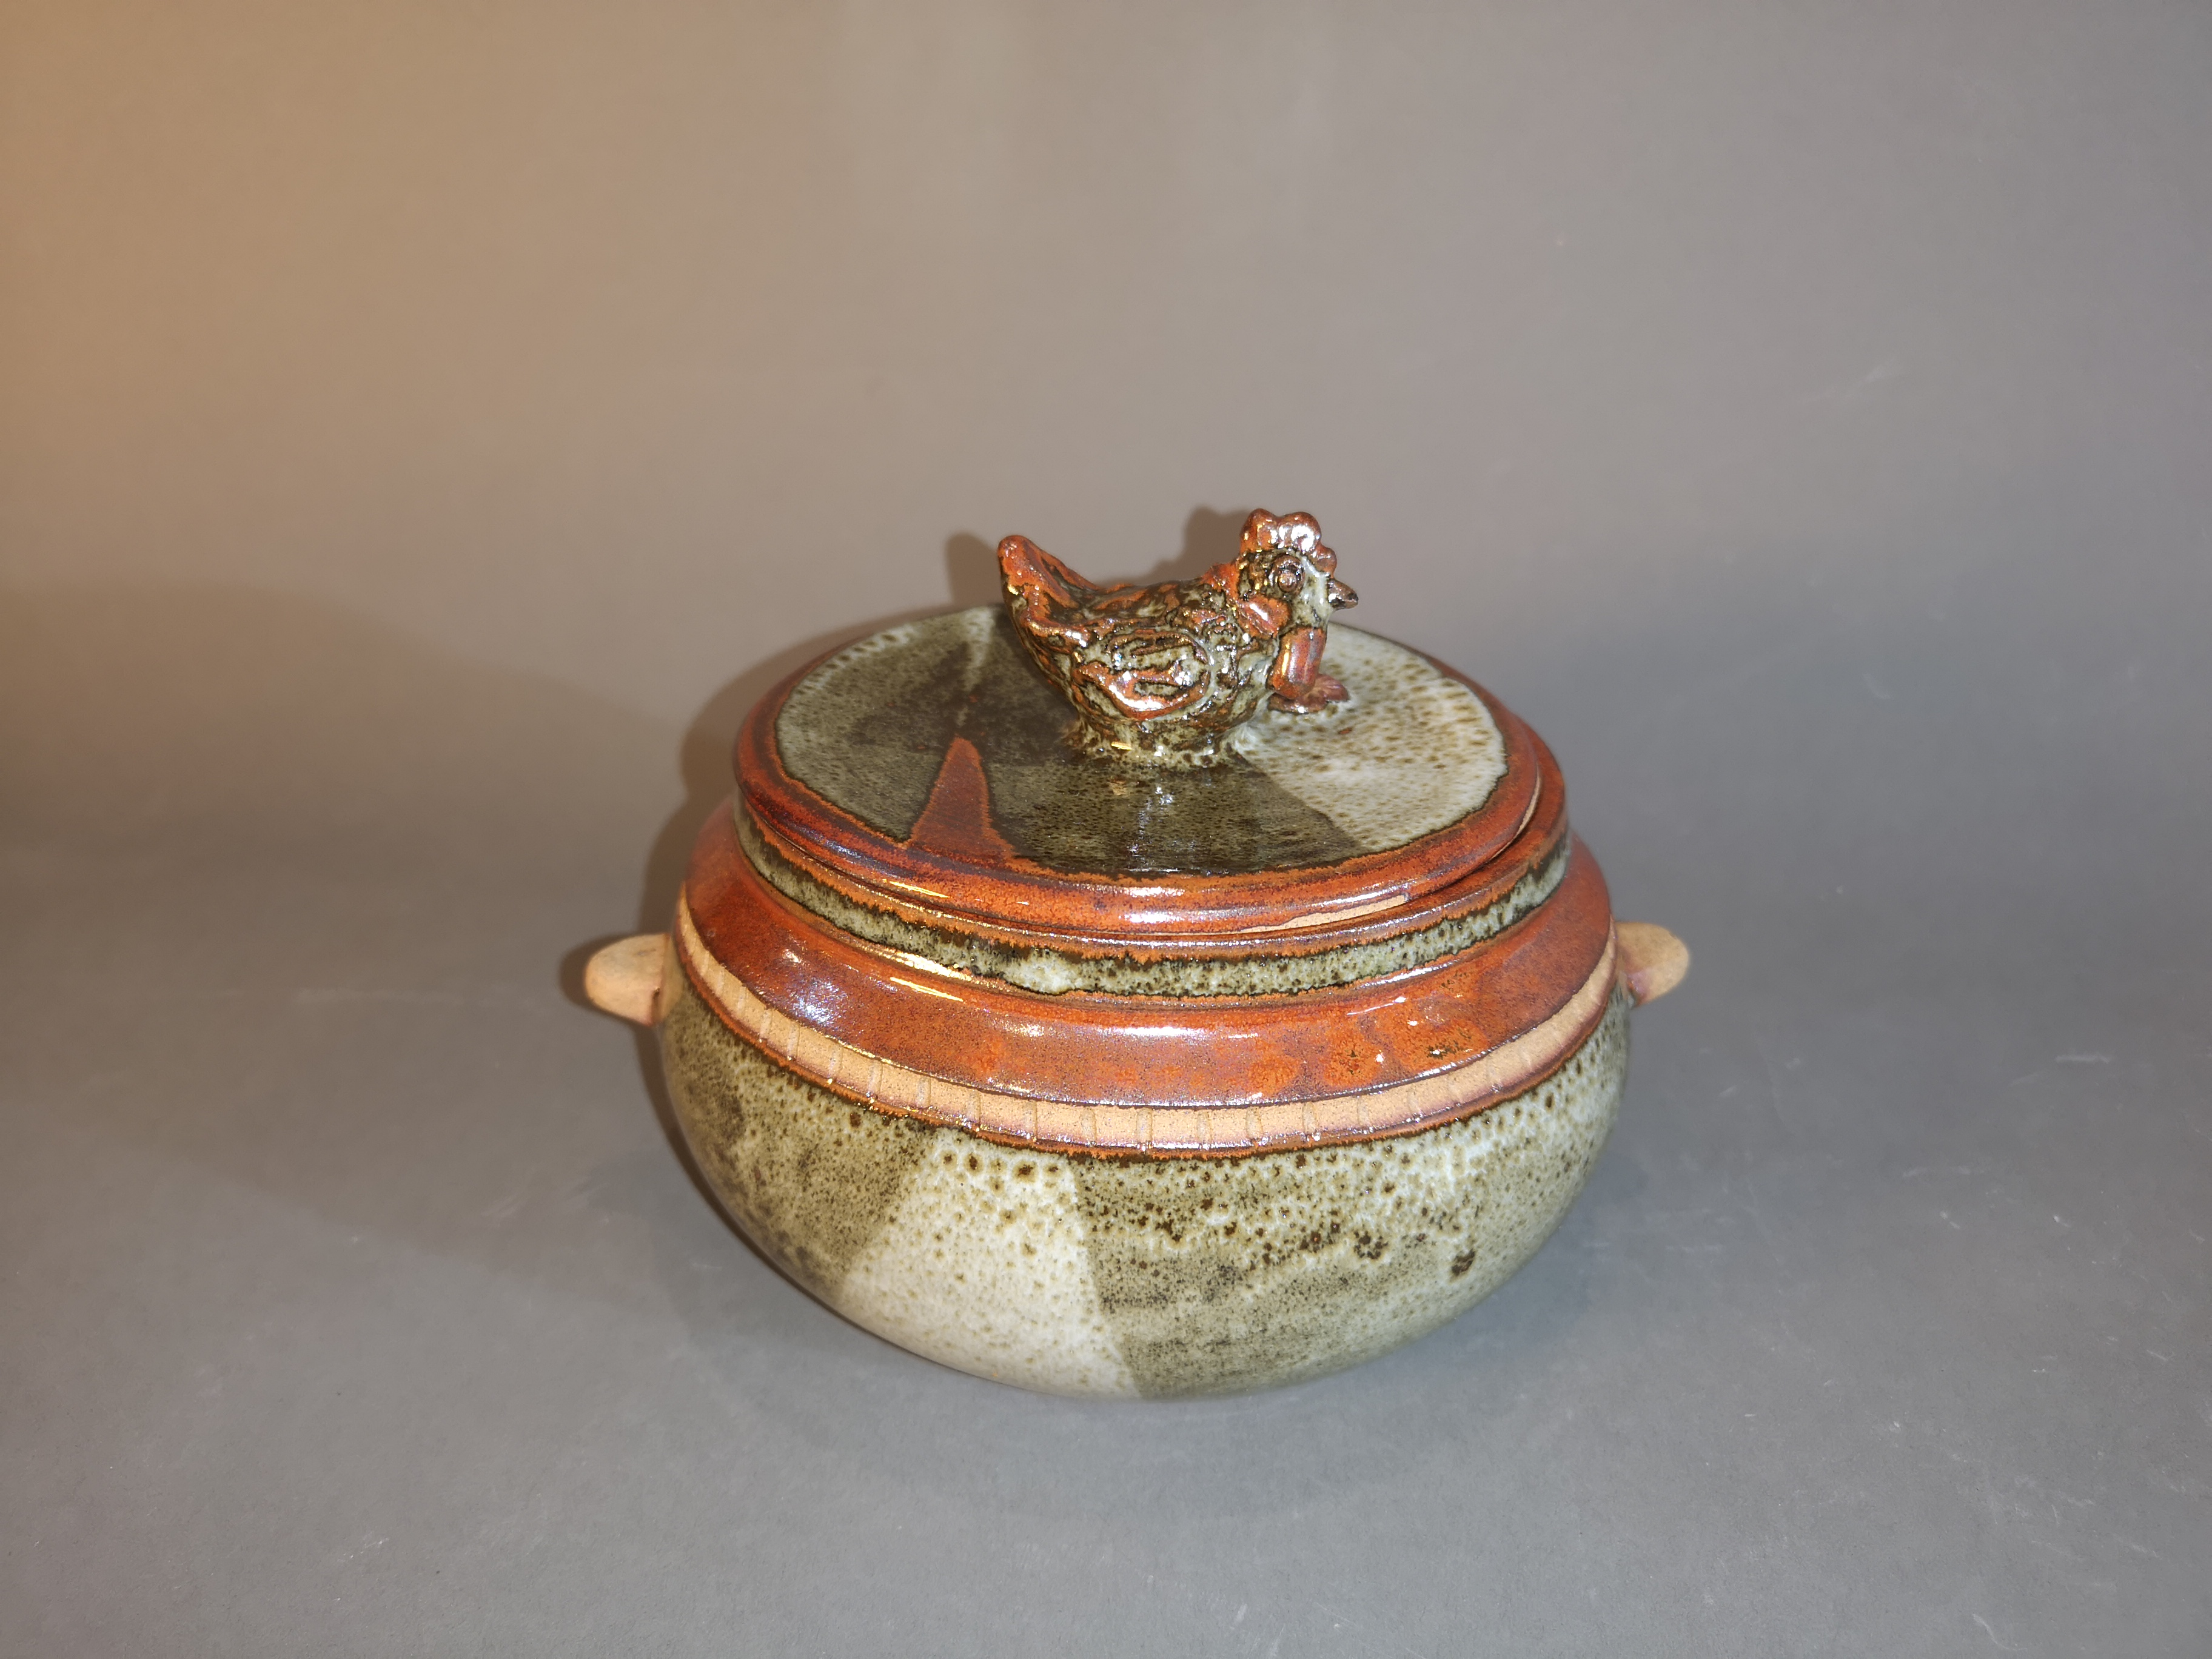 Atelier de poterie Catherine Lefebvre